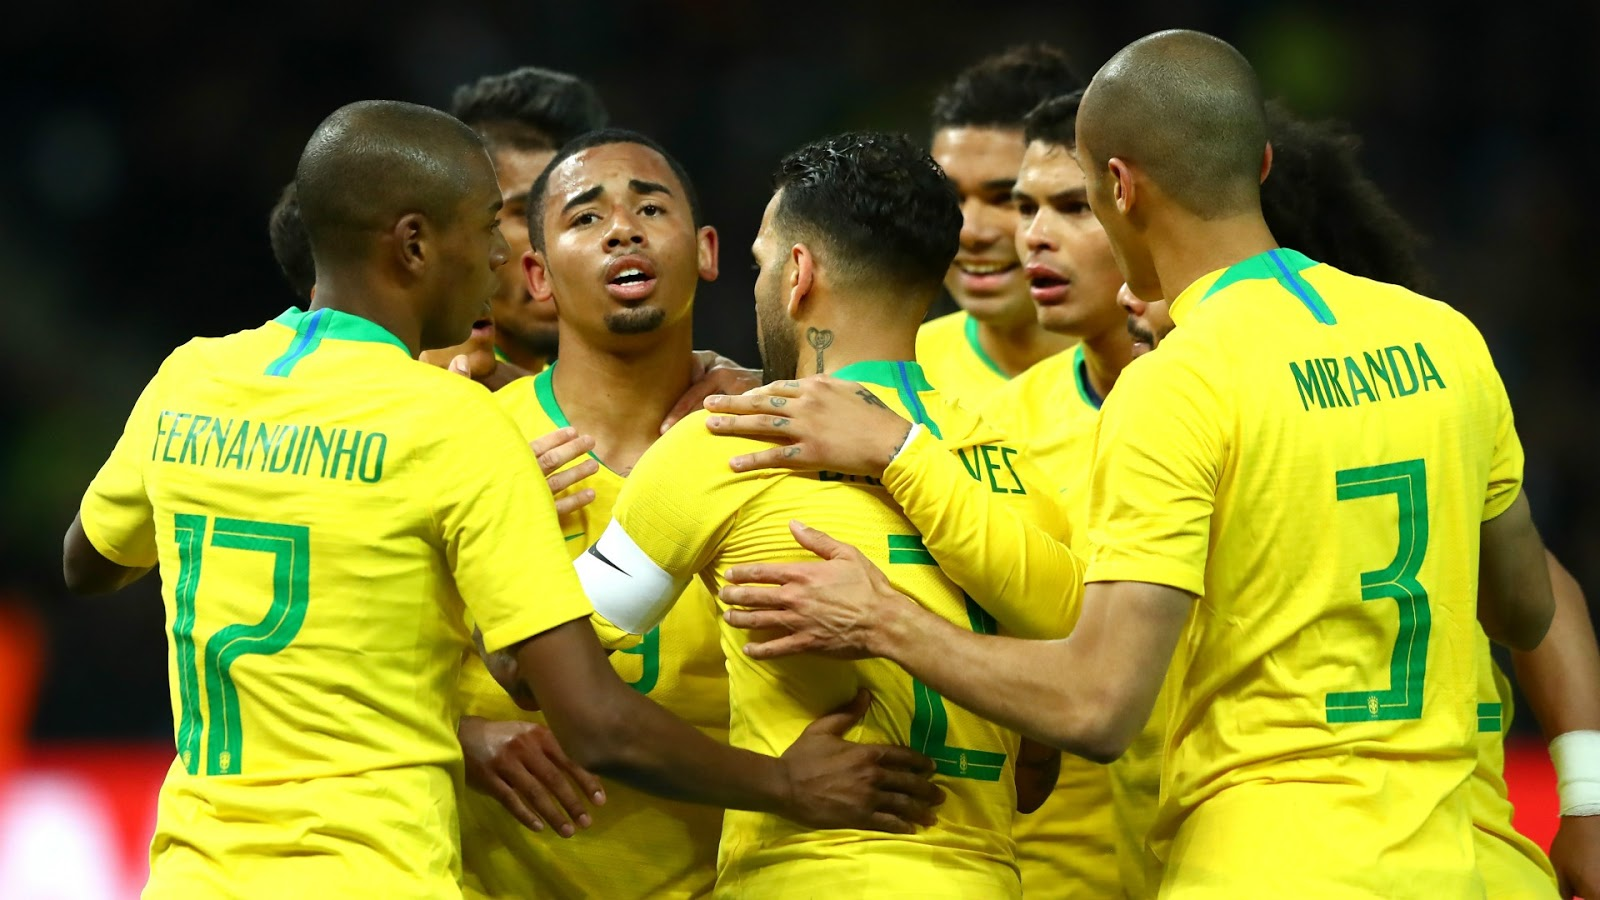 Danilo-Taison-va-Neymar-co-ten-trong-doi-hinh-cua-Brazil-du-World-Cup-2018